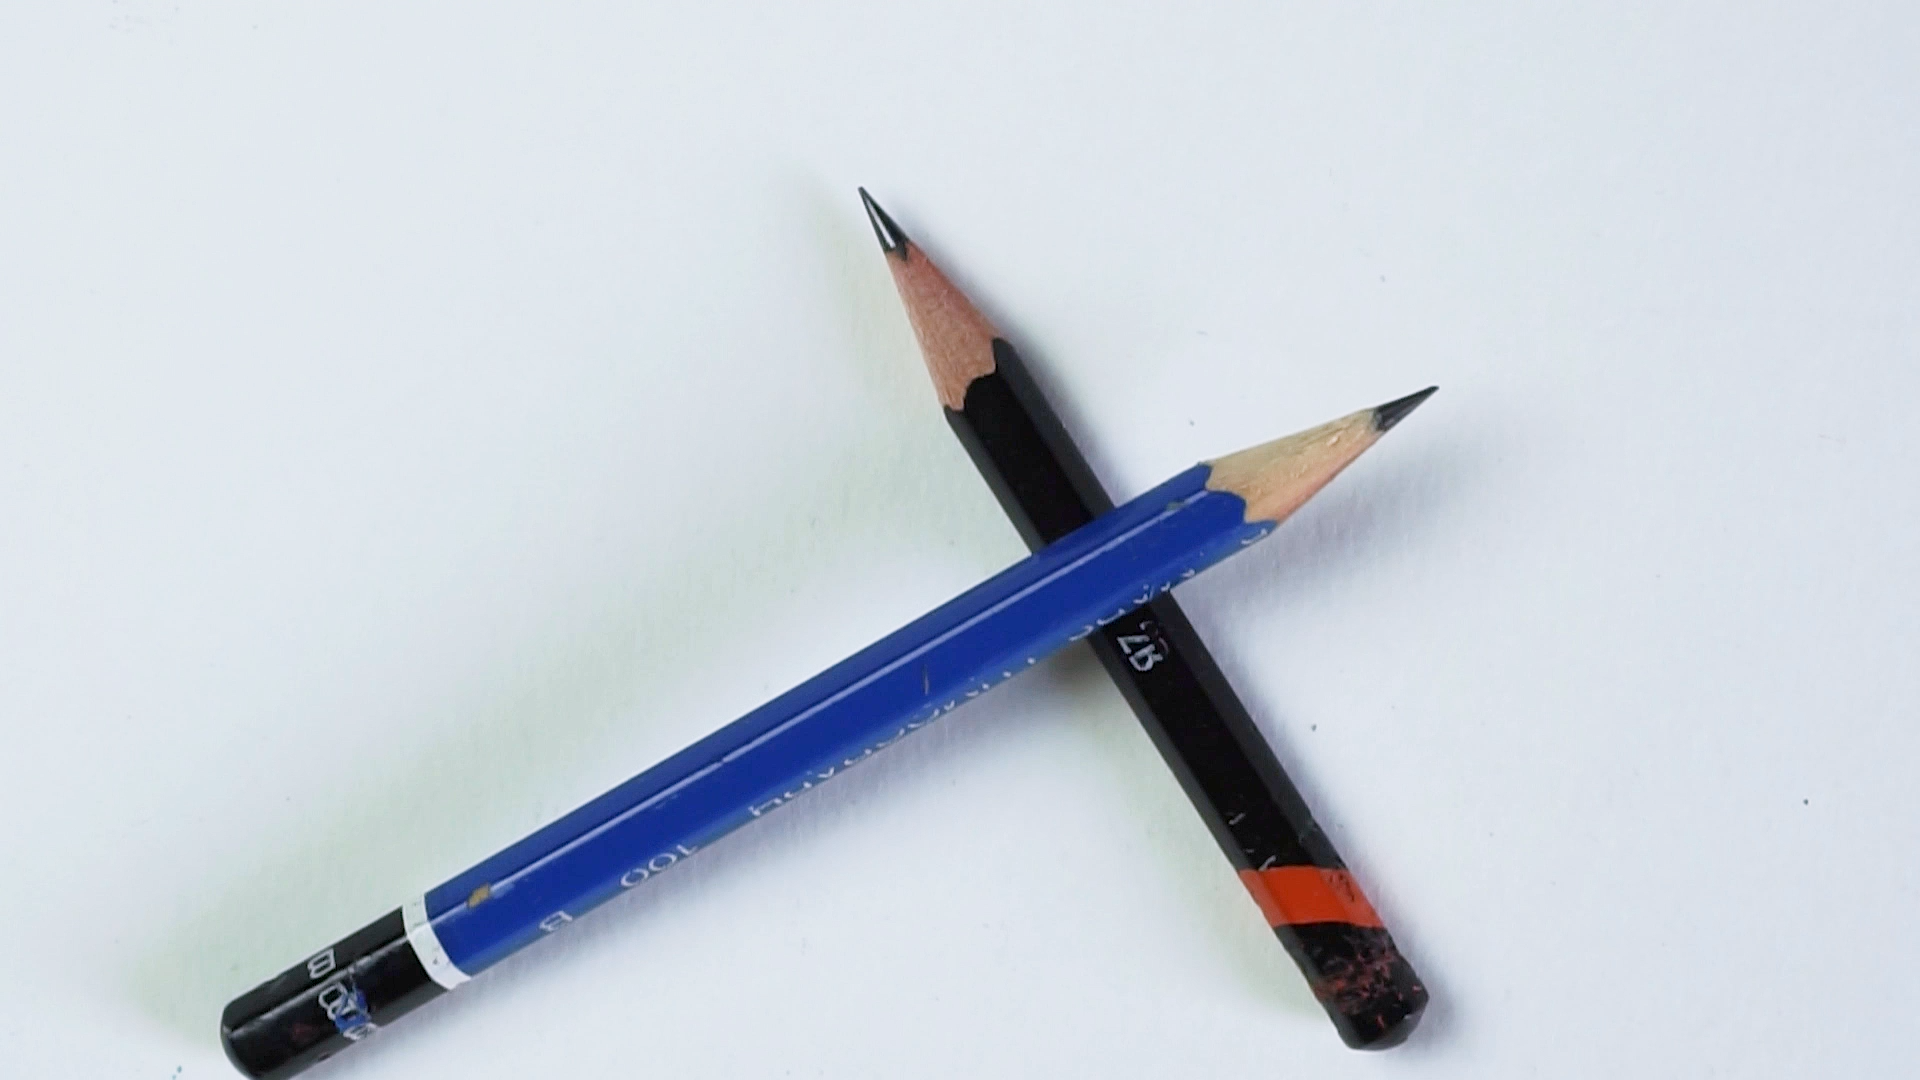 Just a B and a 2B pencil for sketching and signing stuff